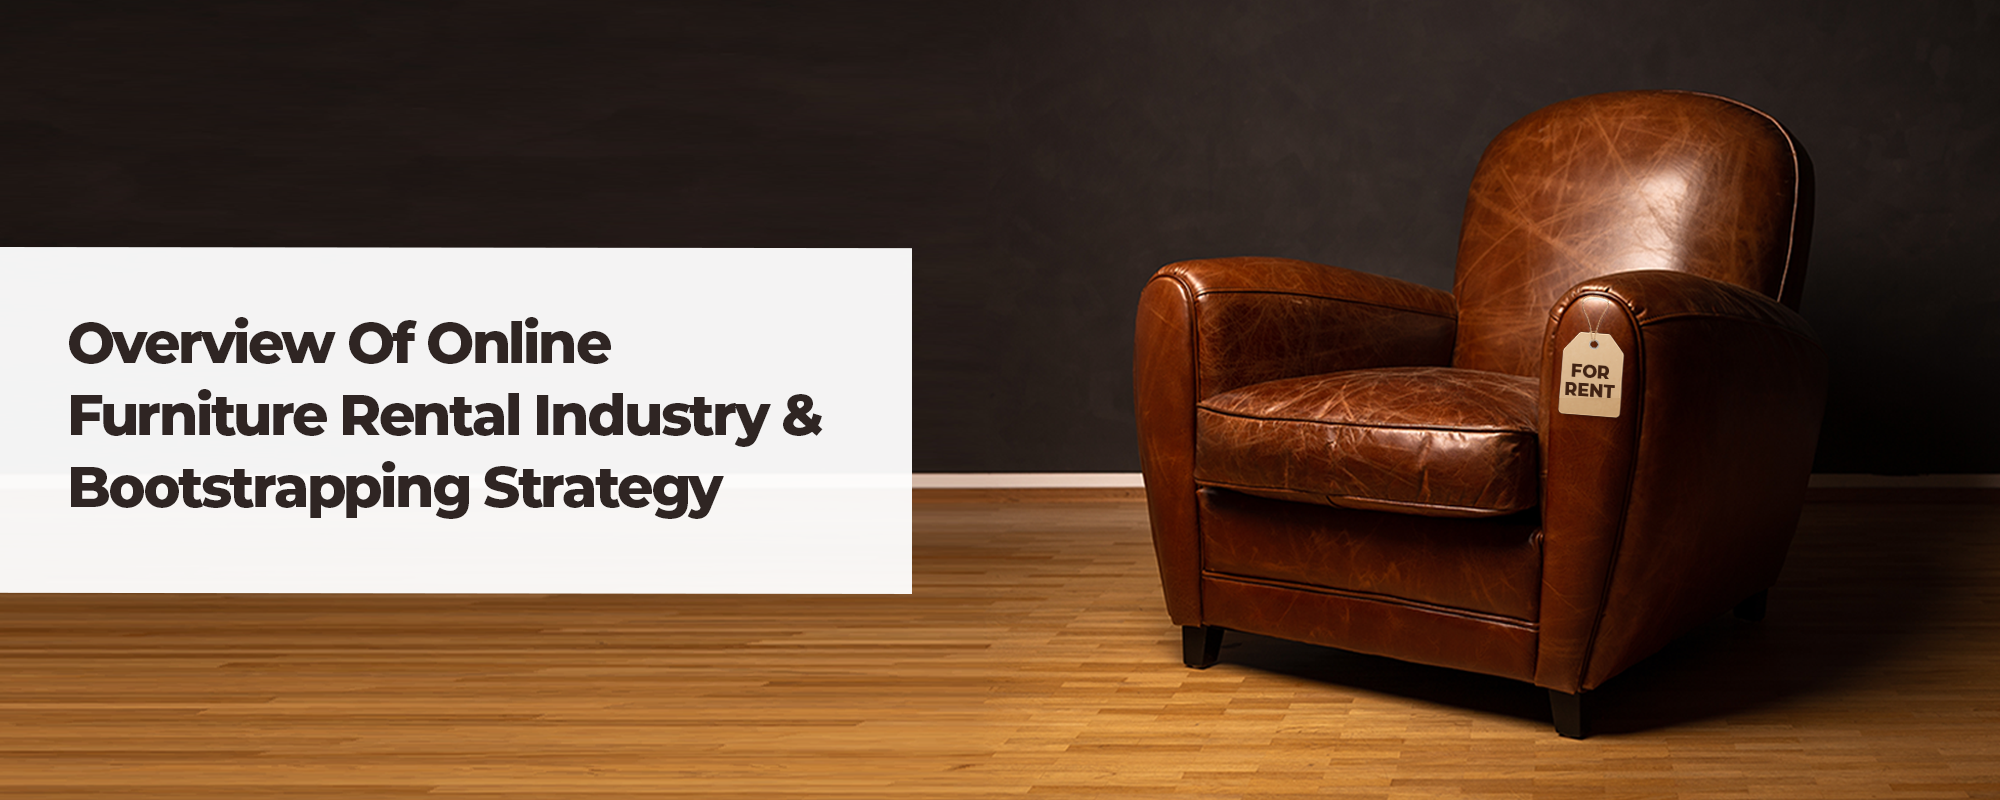 How to Launch an Online Furniture Rental Marketplace – Business Model & Key Considerations